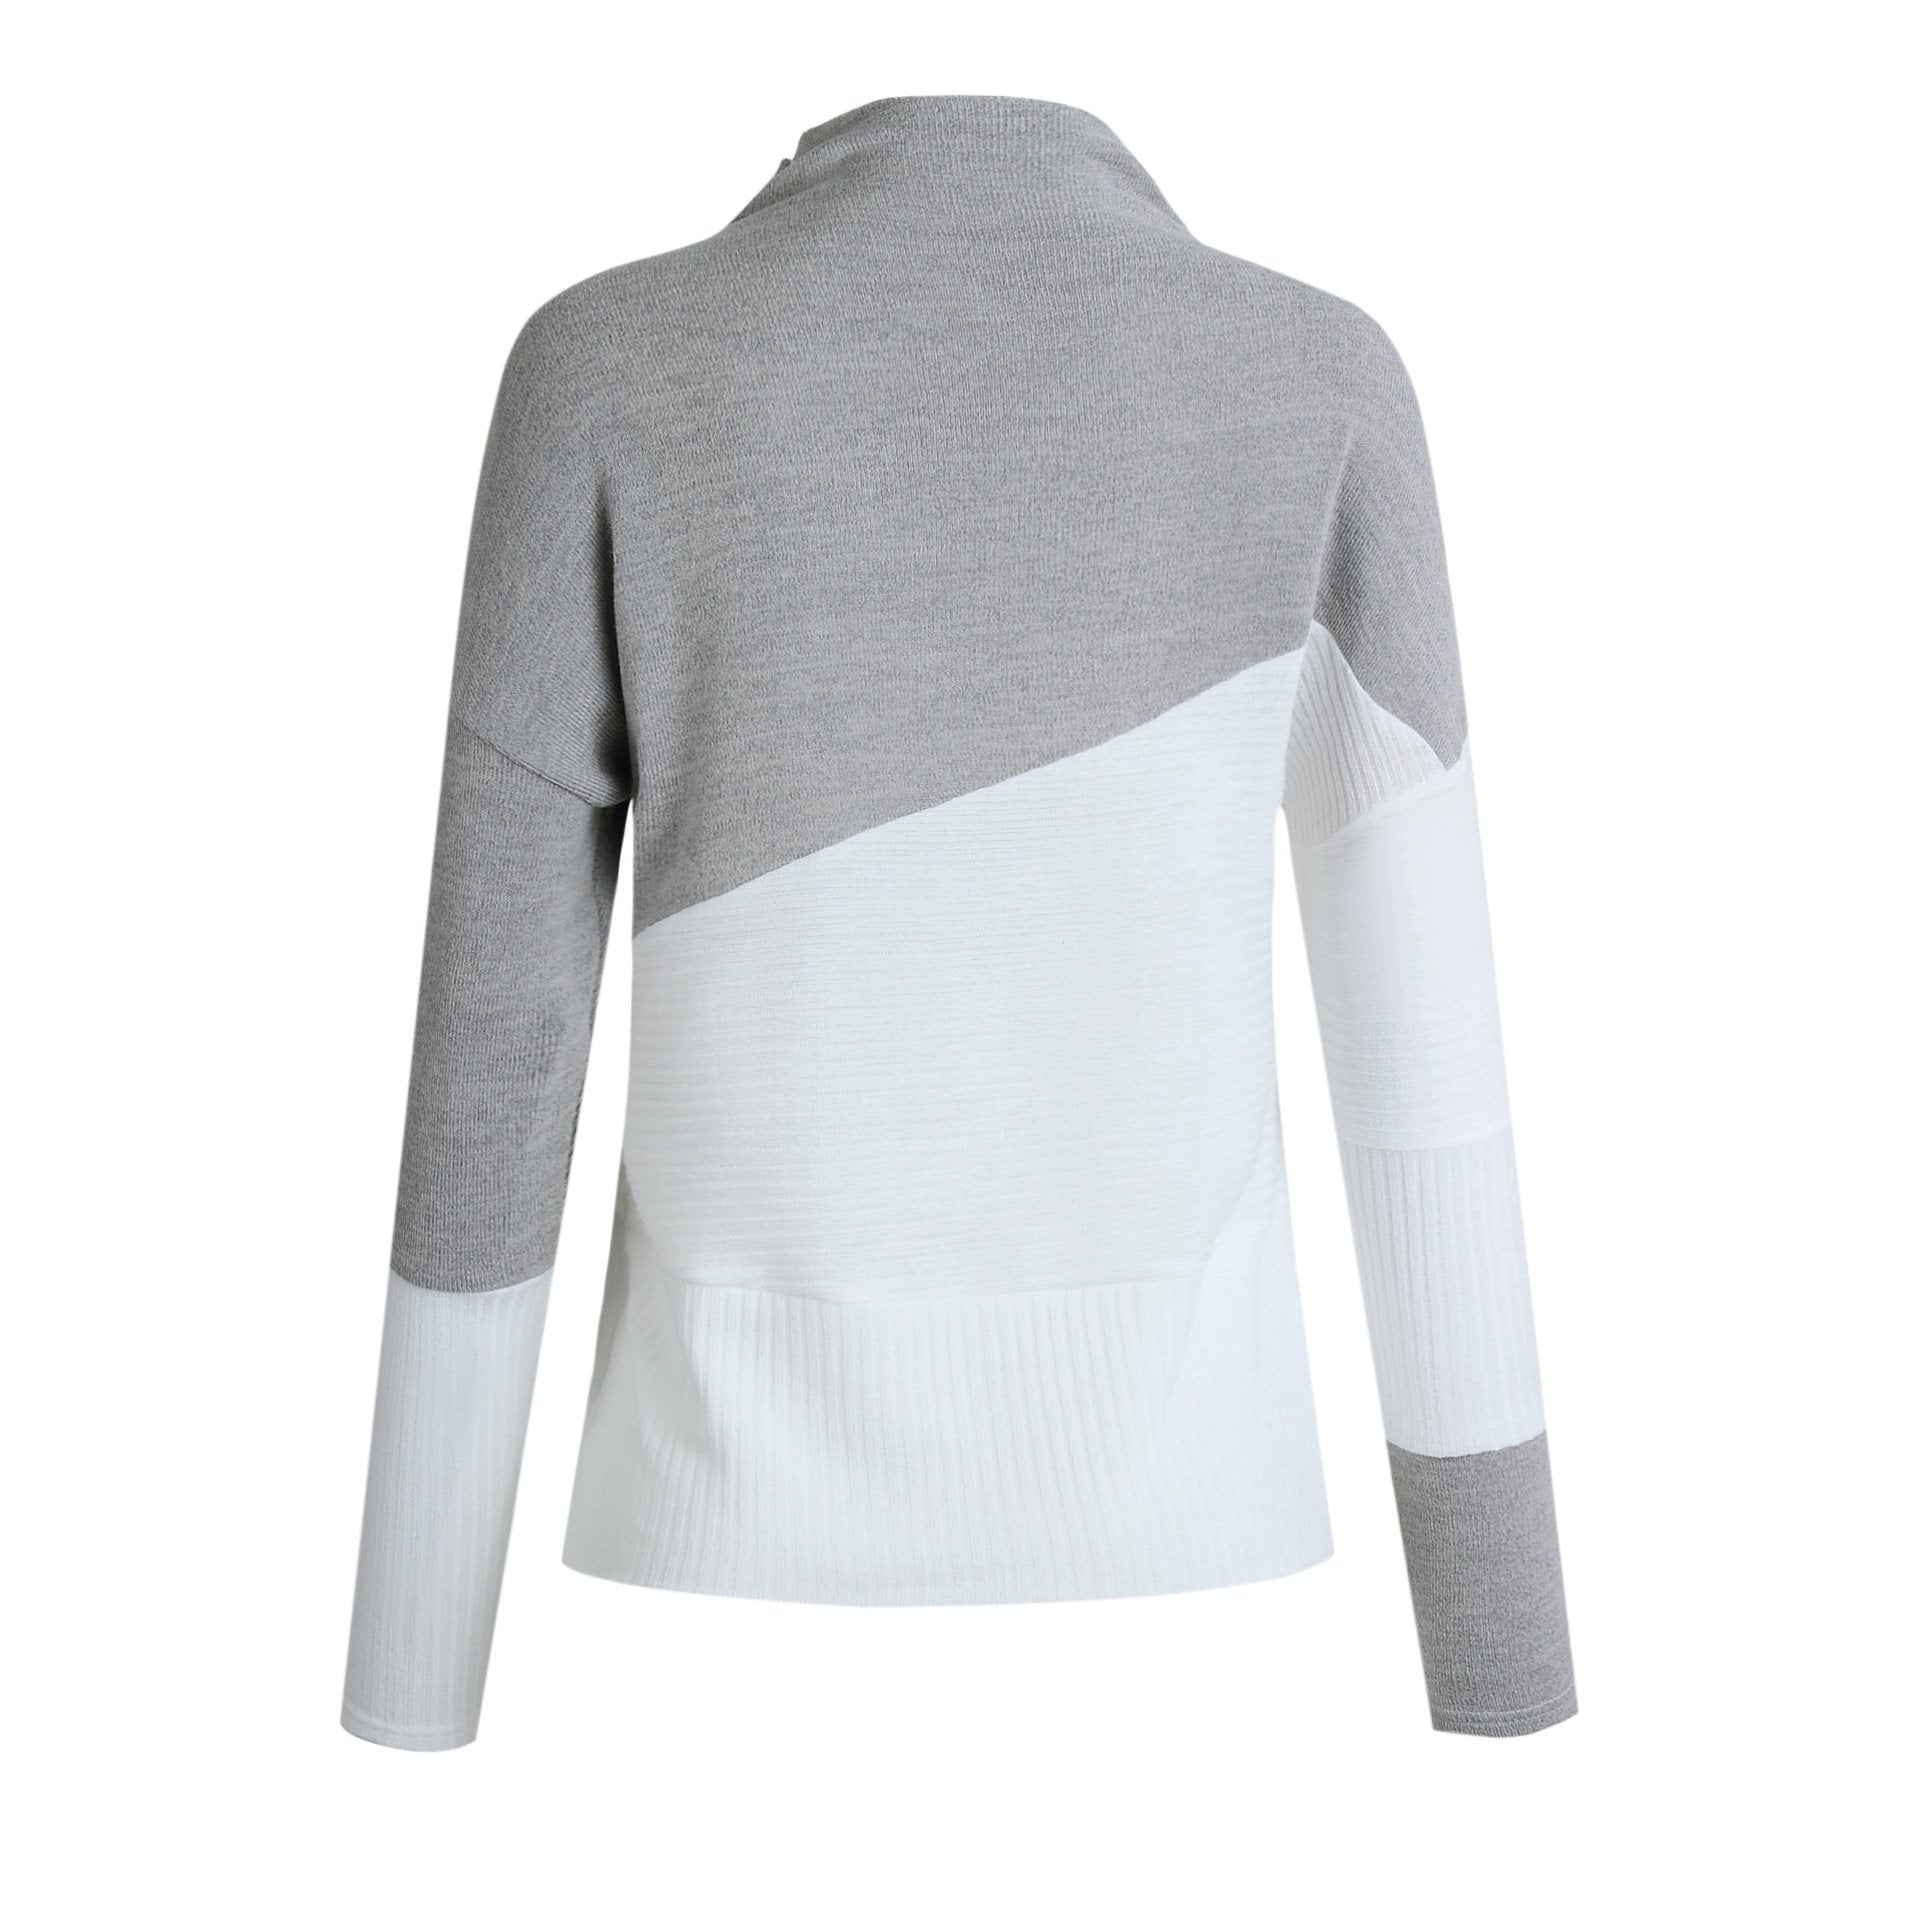 Splice Long Sleeve High Neck Knit Sweatshirt